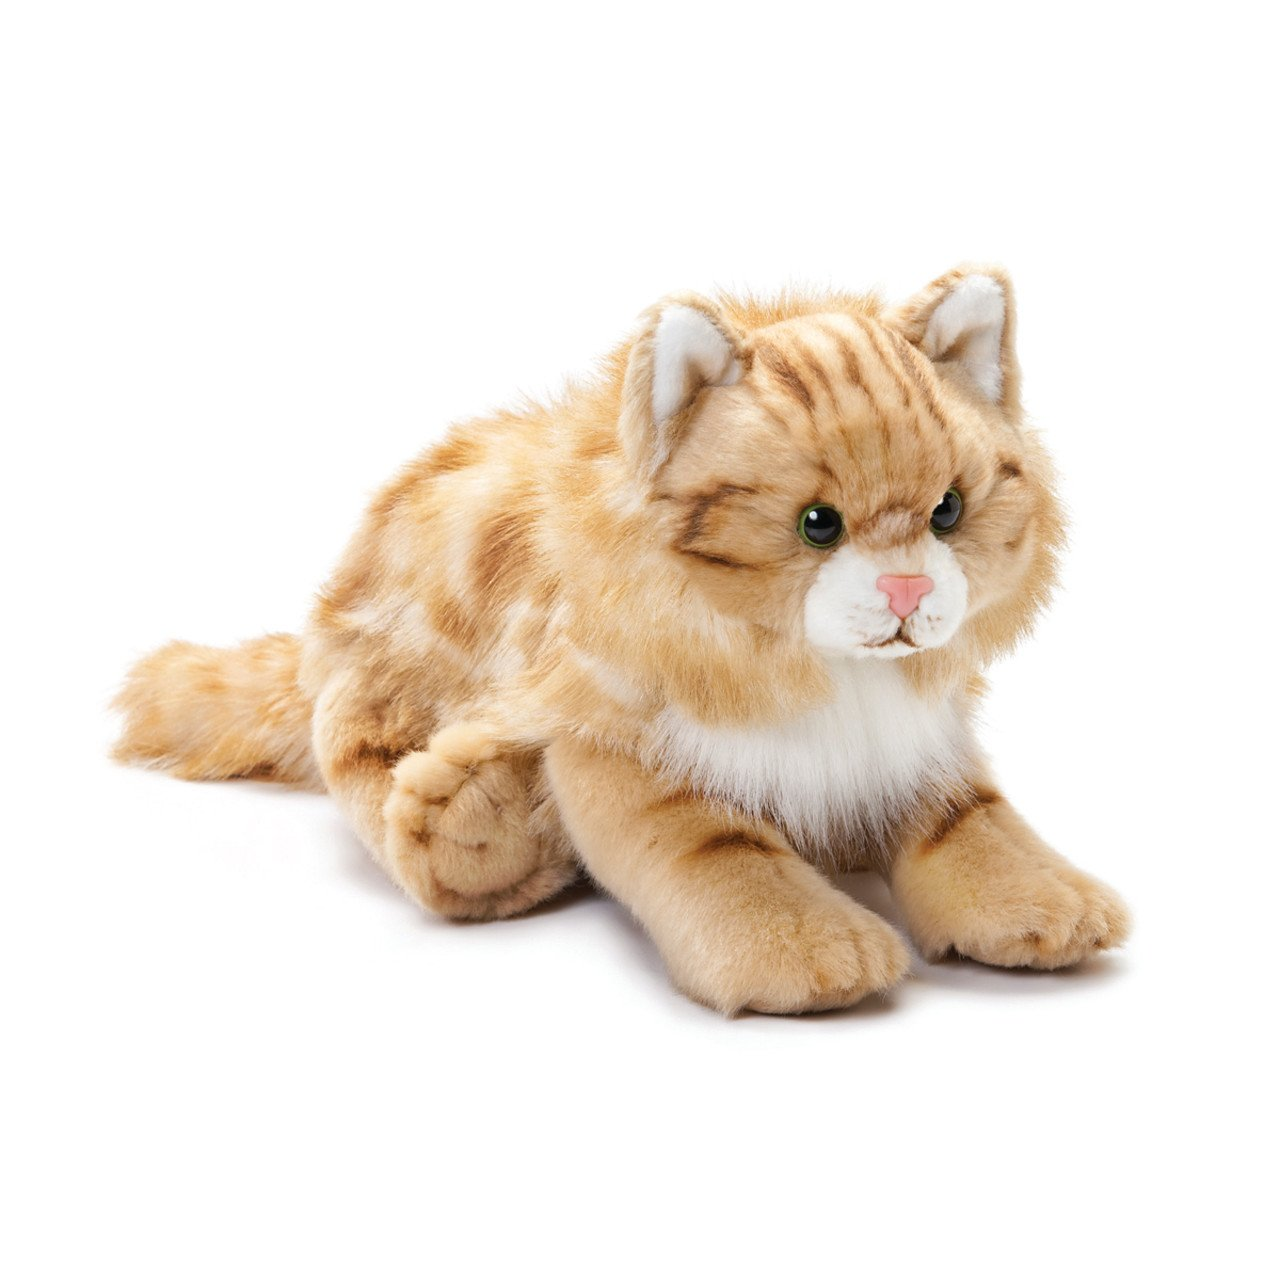 DEMDACO Large Maine Coon Cat Striped Ginger Children's Plush Stuffed Animal Toy by DEMDACO